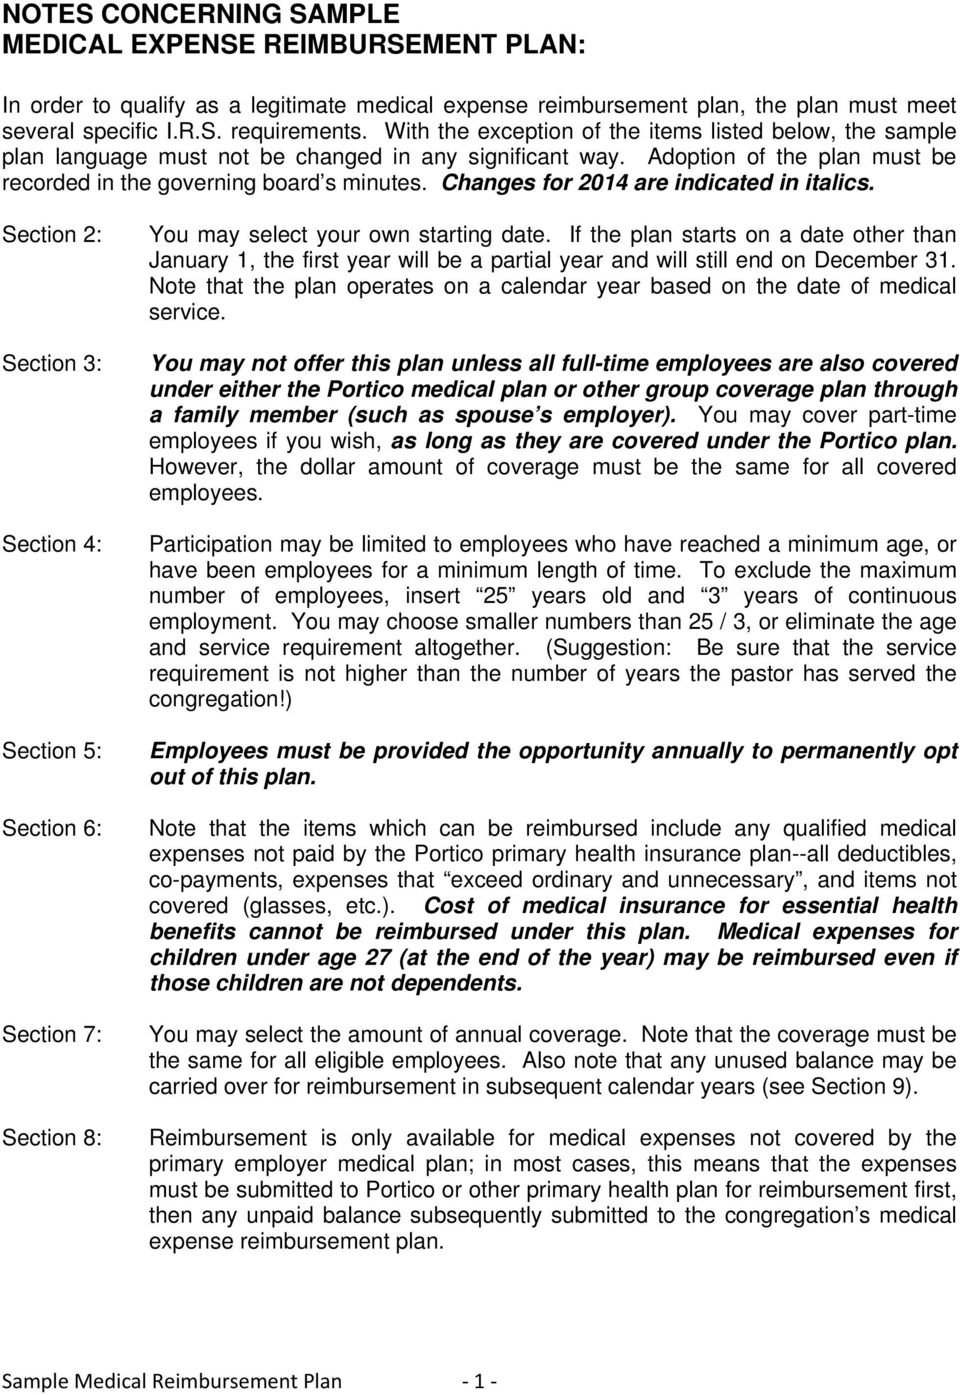 Sample Medical Reimbur T Plan 1 Changes For 2014 Are Indicated In Italics Section  Section 4